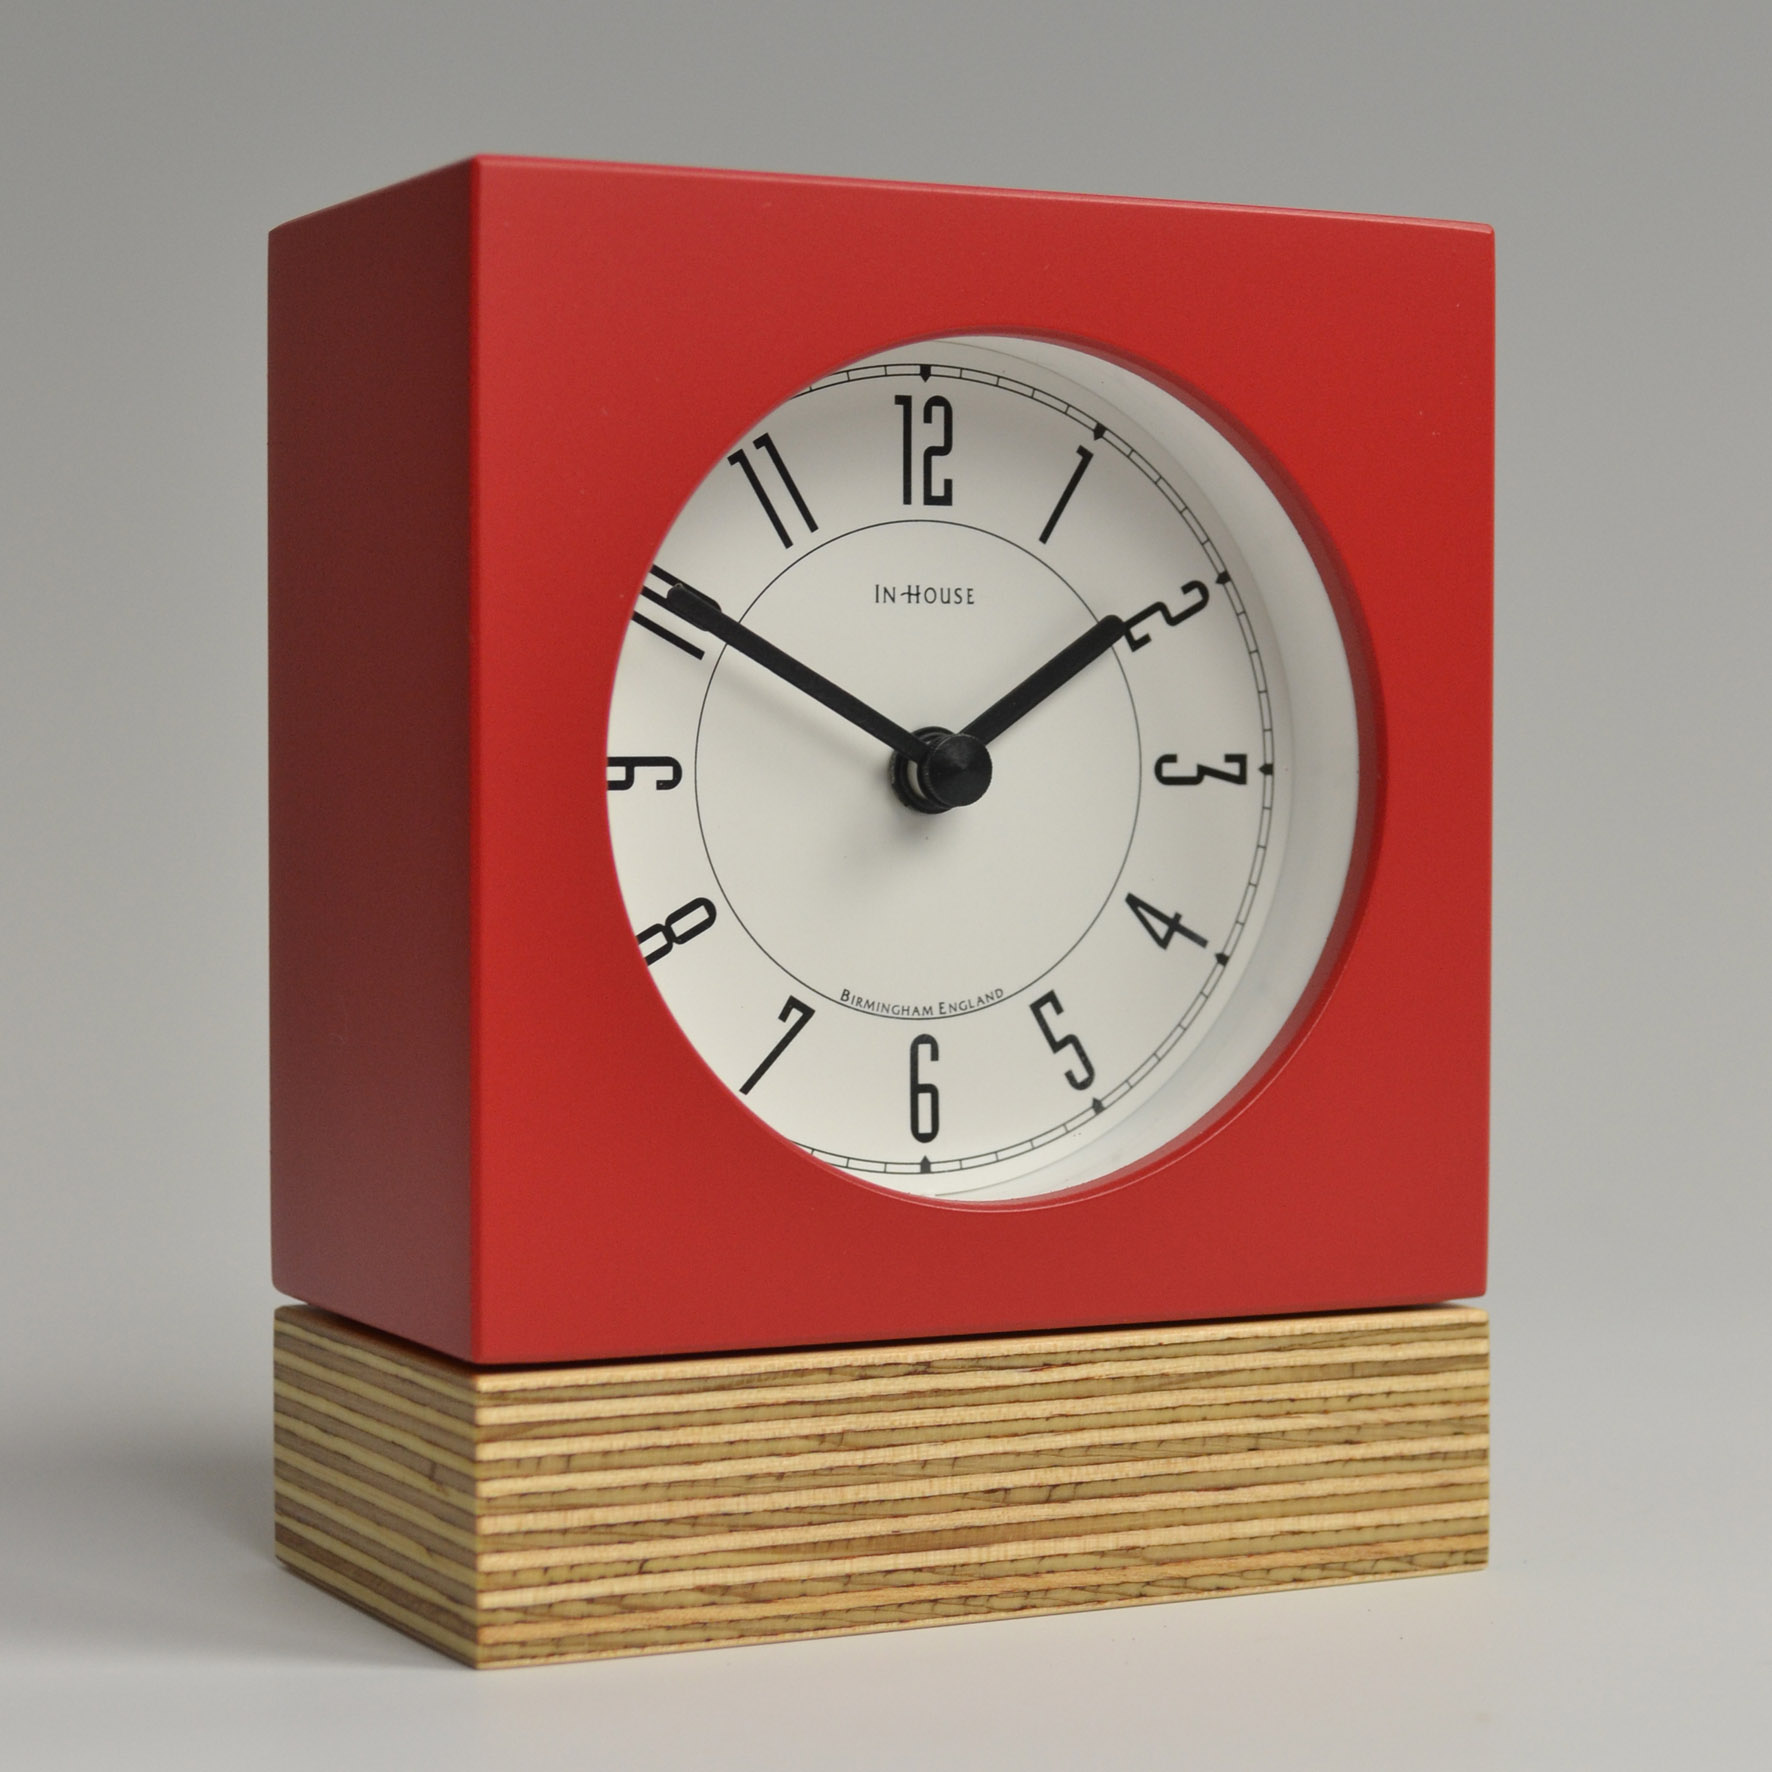 Inhouse clocks | British handmade clocks | red mantel clock